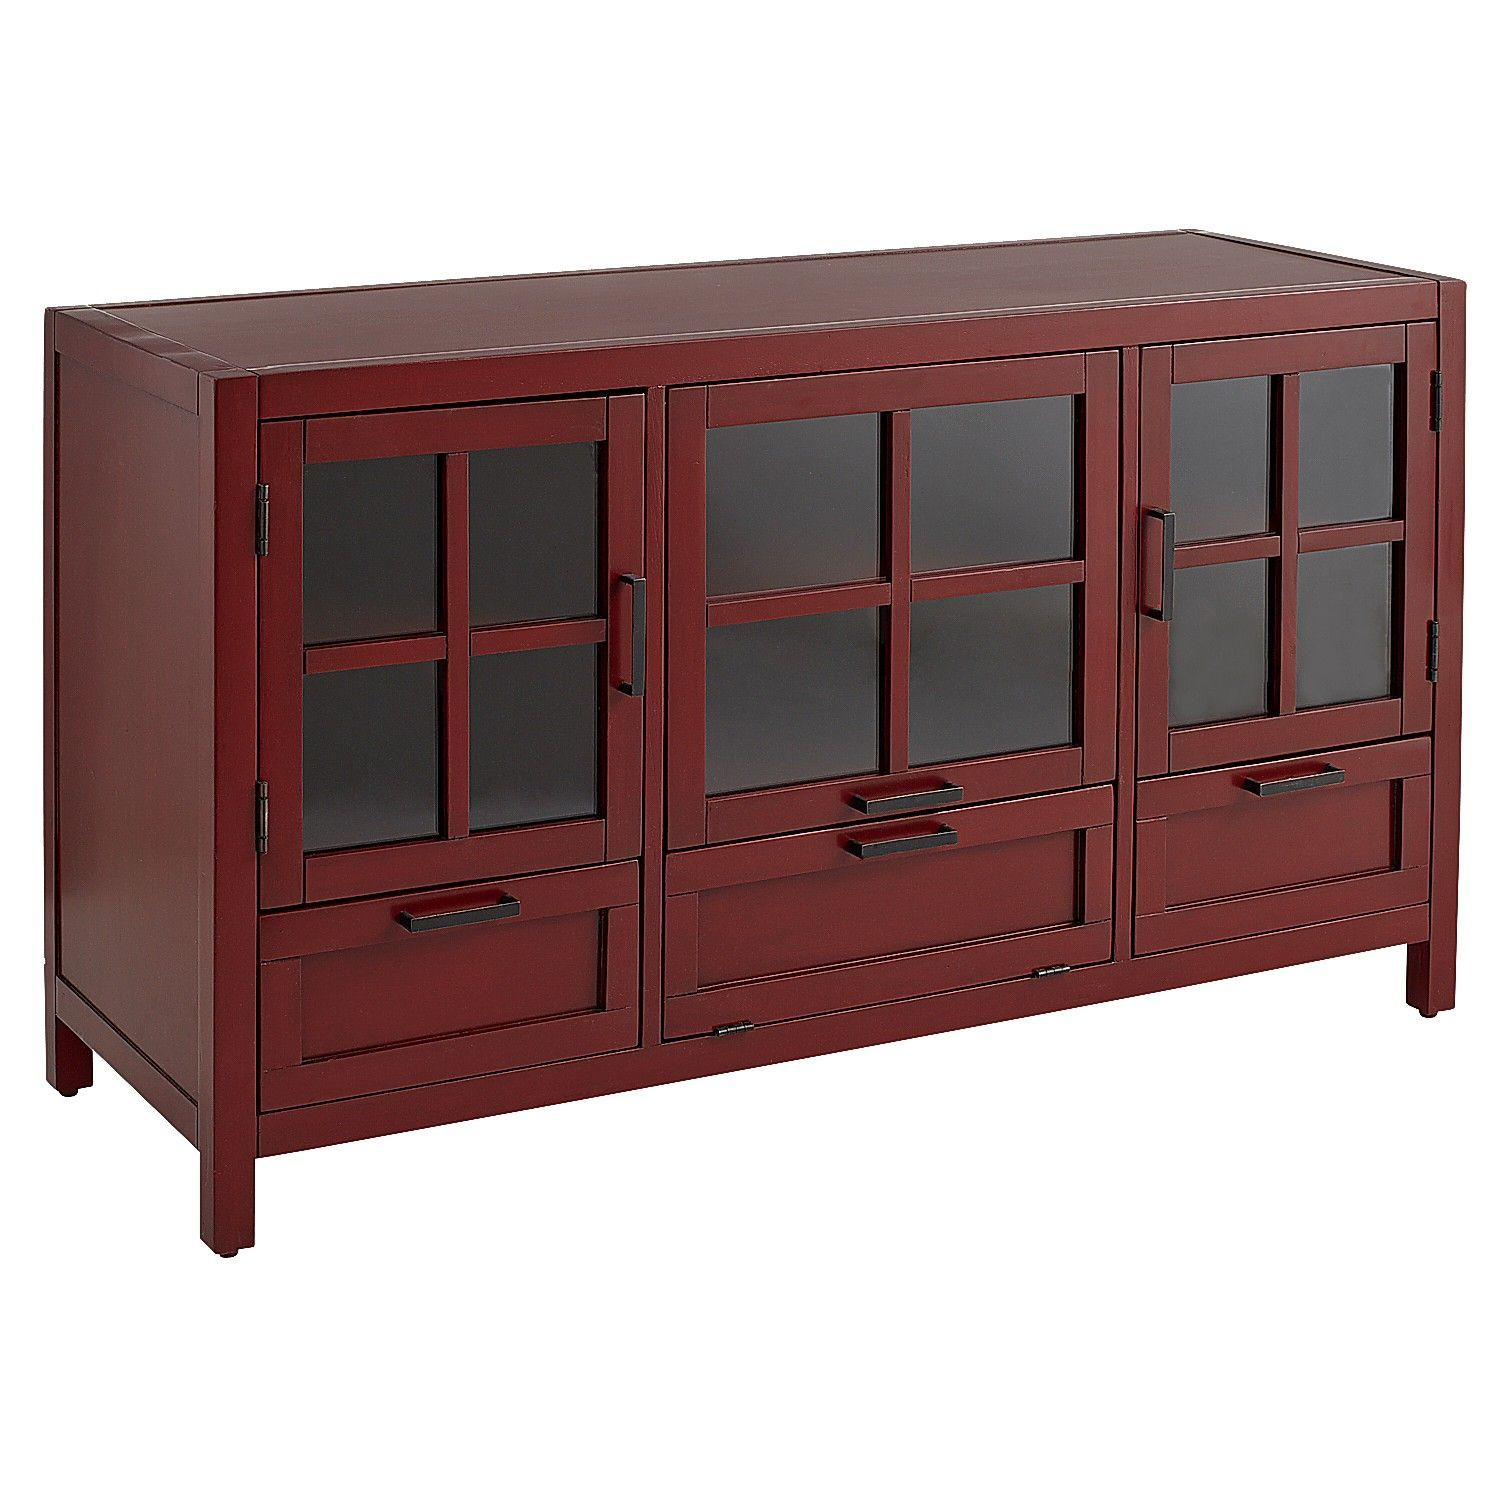 Sausalito antique red modular 52 tv stand